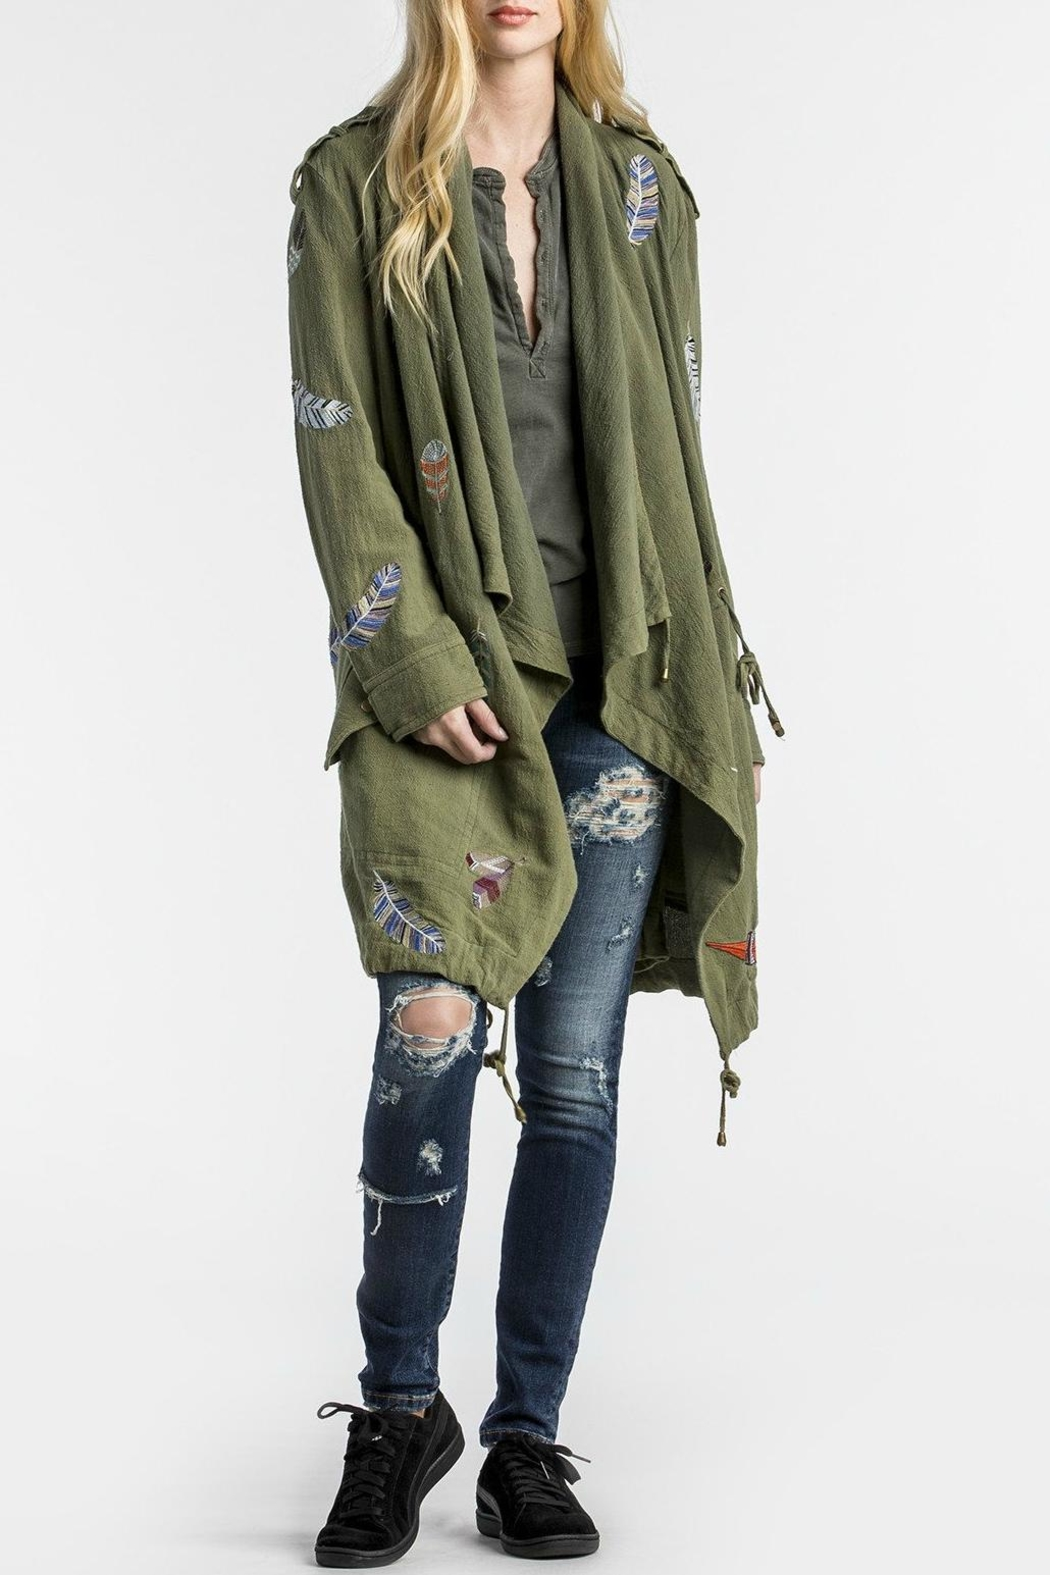 MM Vintage Feather Embroidered Olive Jacket - Main Image